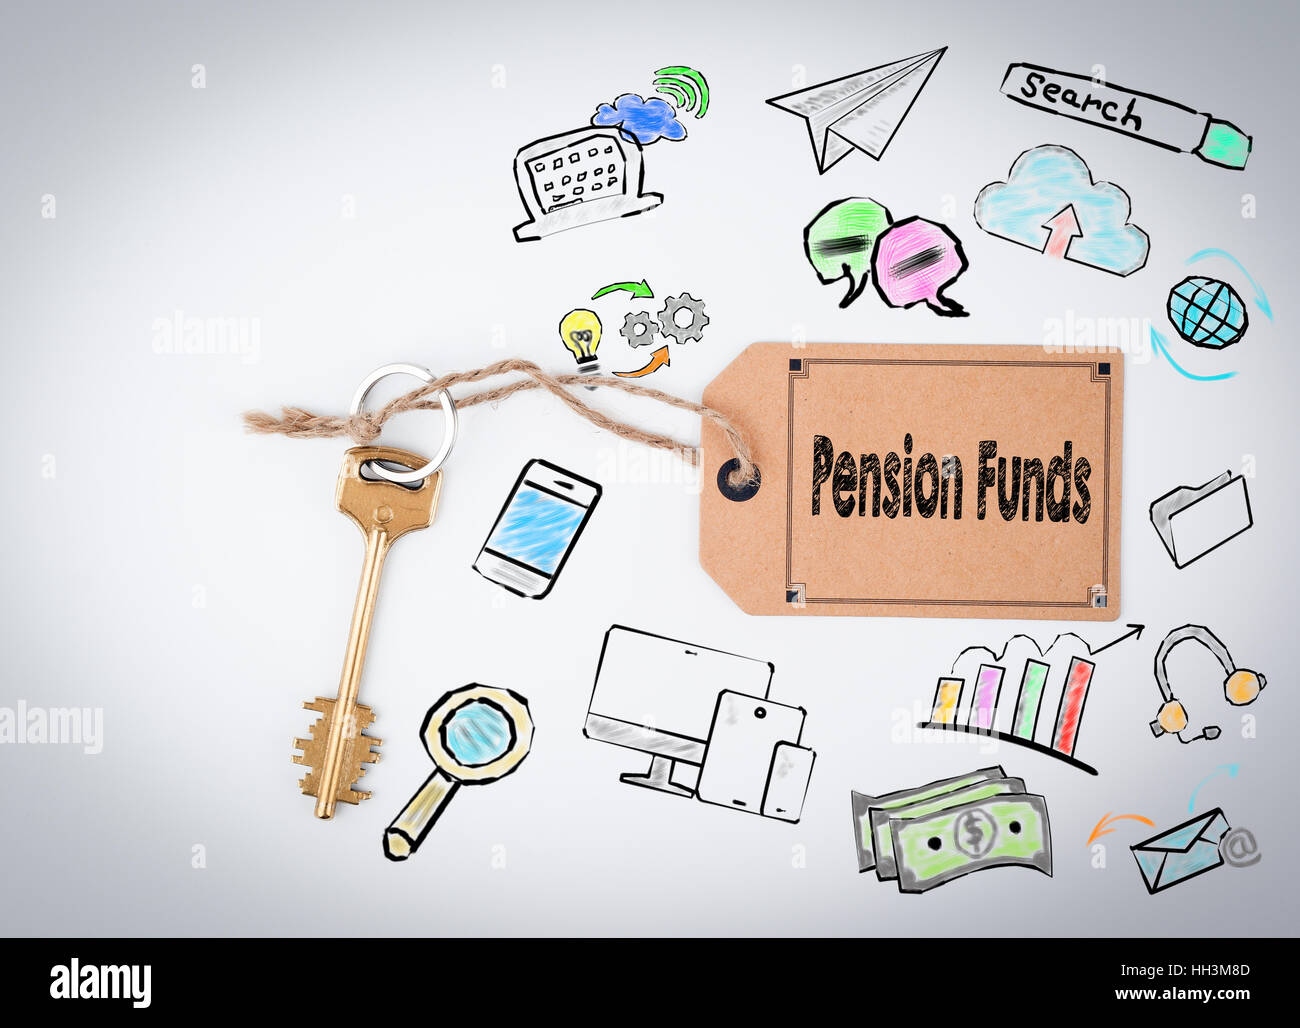 Pension funds concept office environment - Stock Image